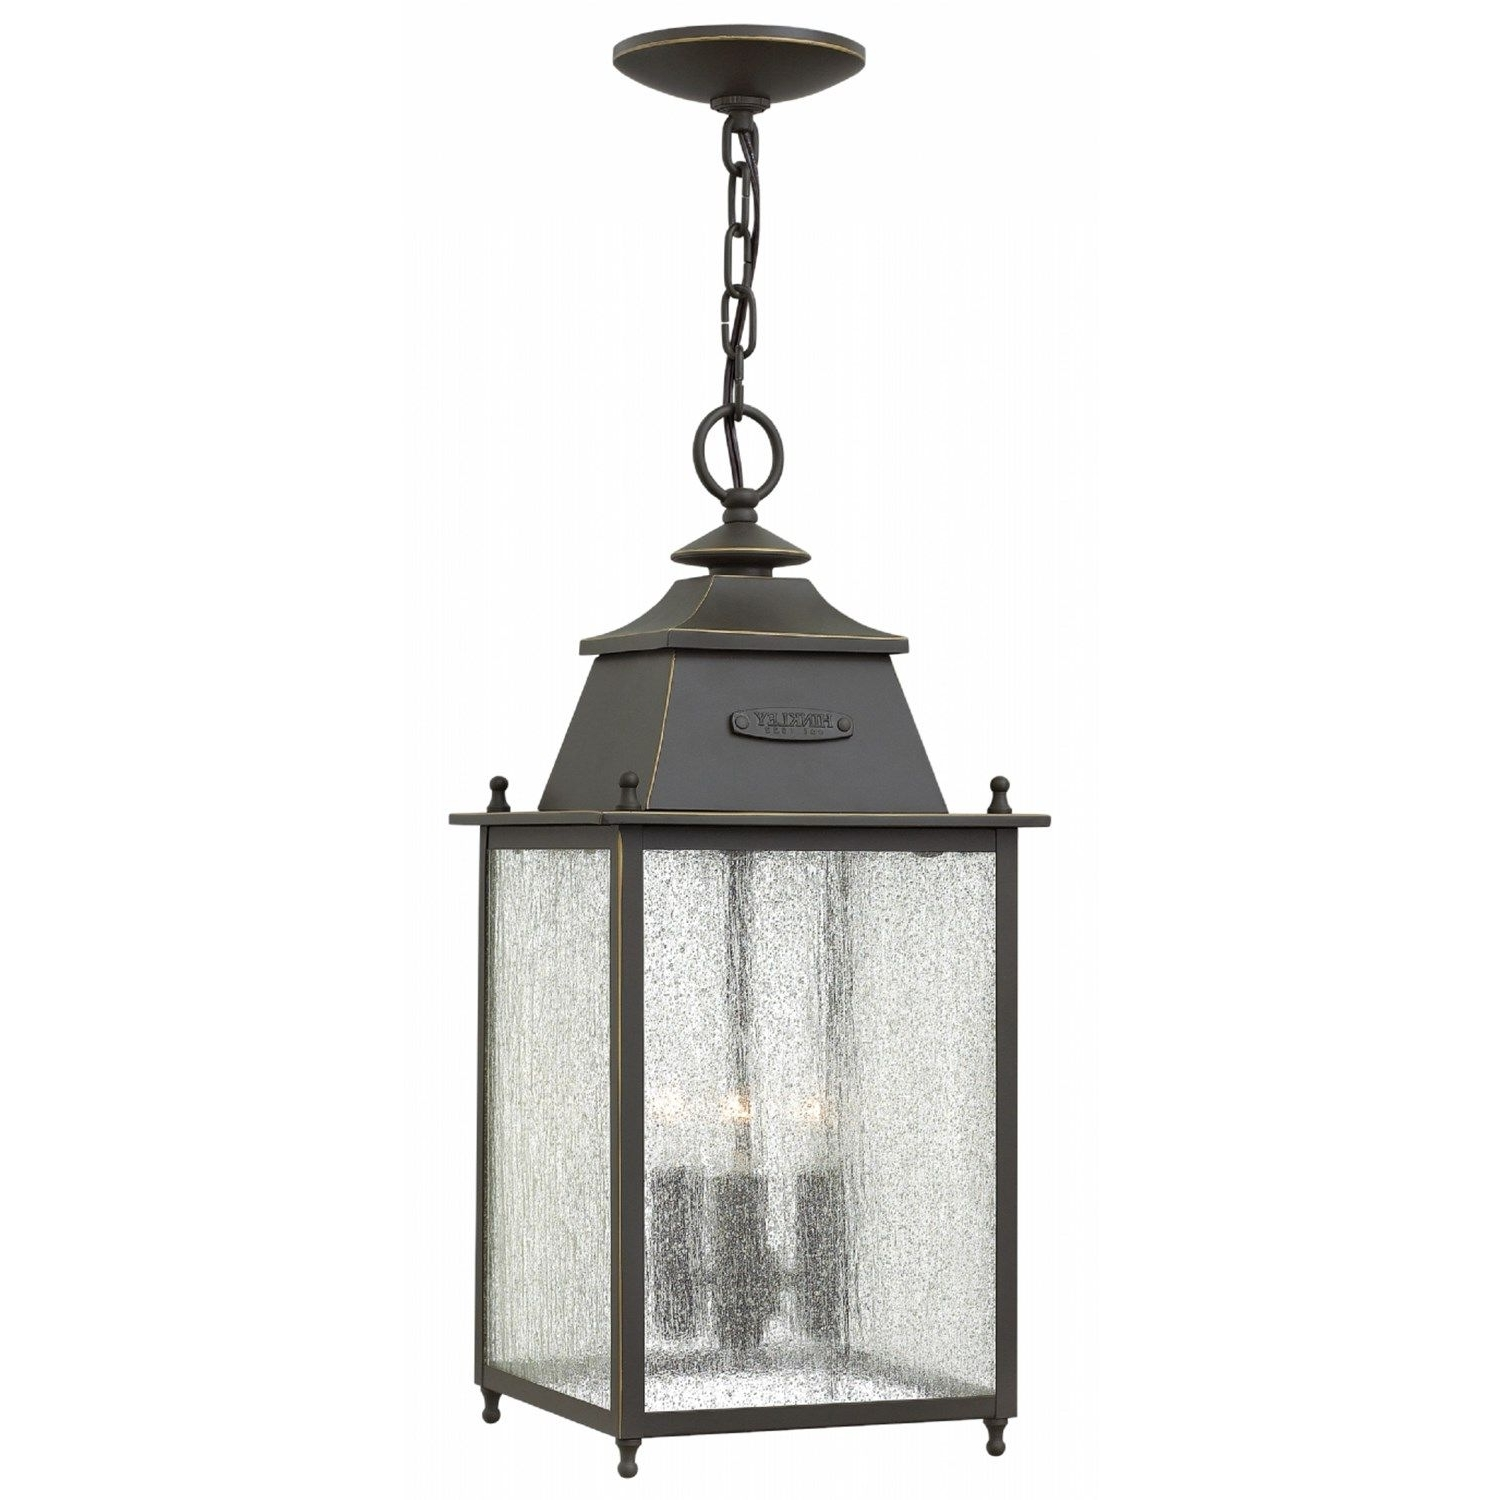 Hanging Porch Hinkley Lighting With Regard To Trendy Hinkley Lighting 2782Oz Chatfield 3 Light Outdoor Hanging In Oil (View 8 of 20)